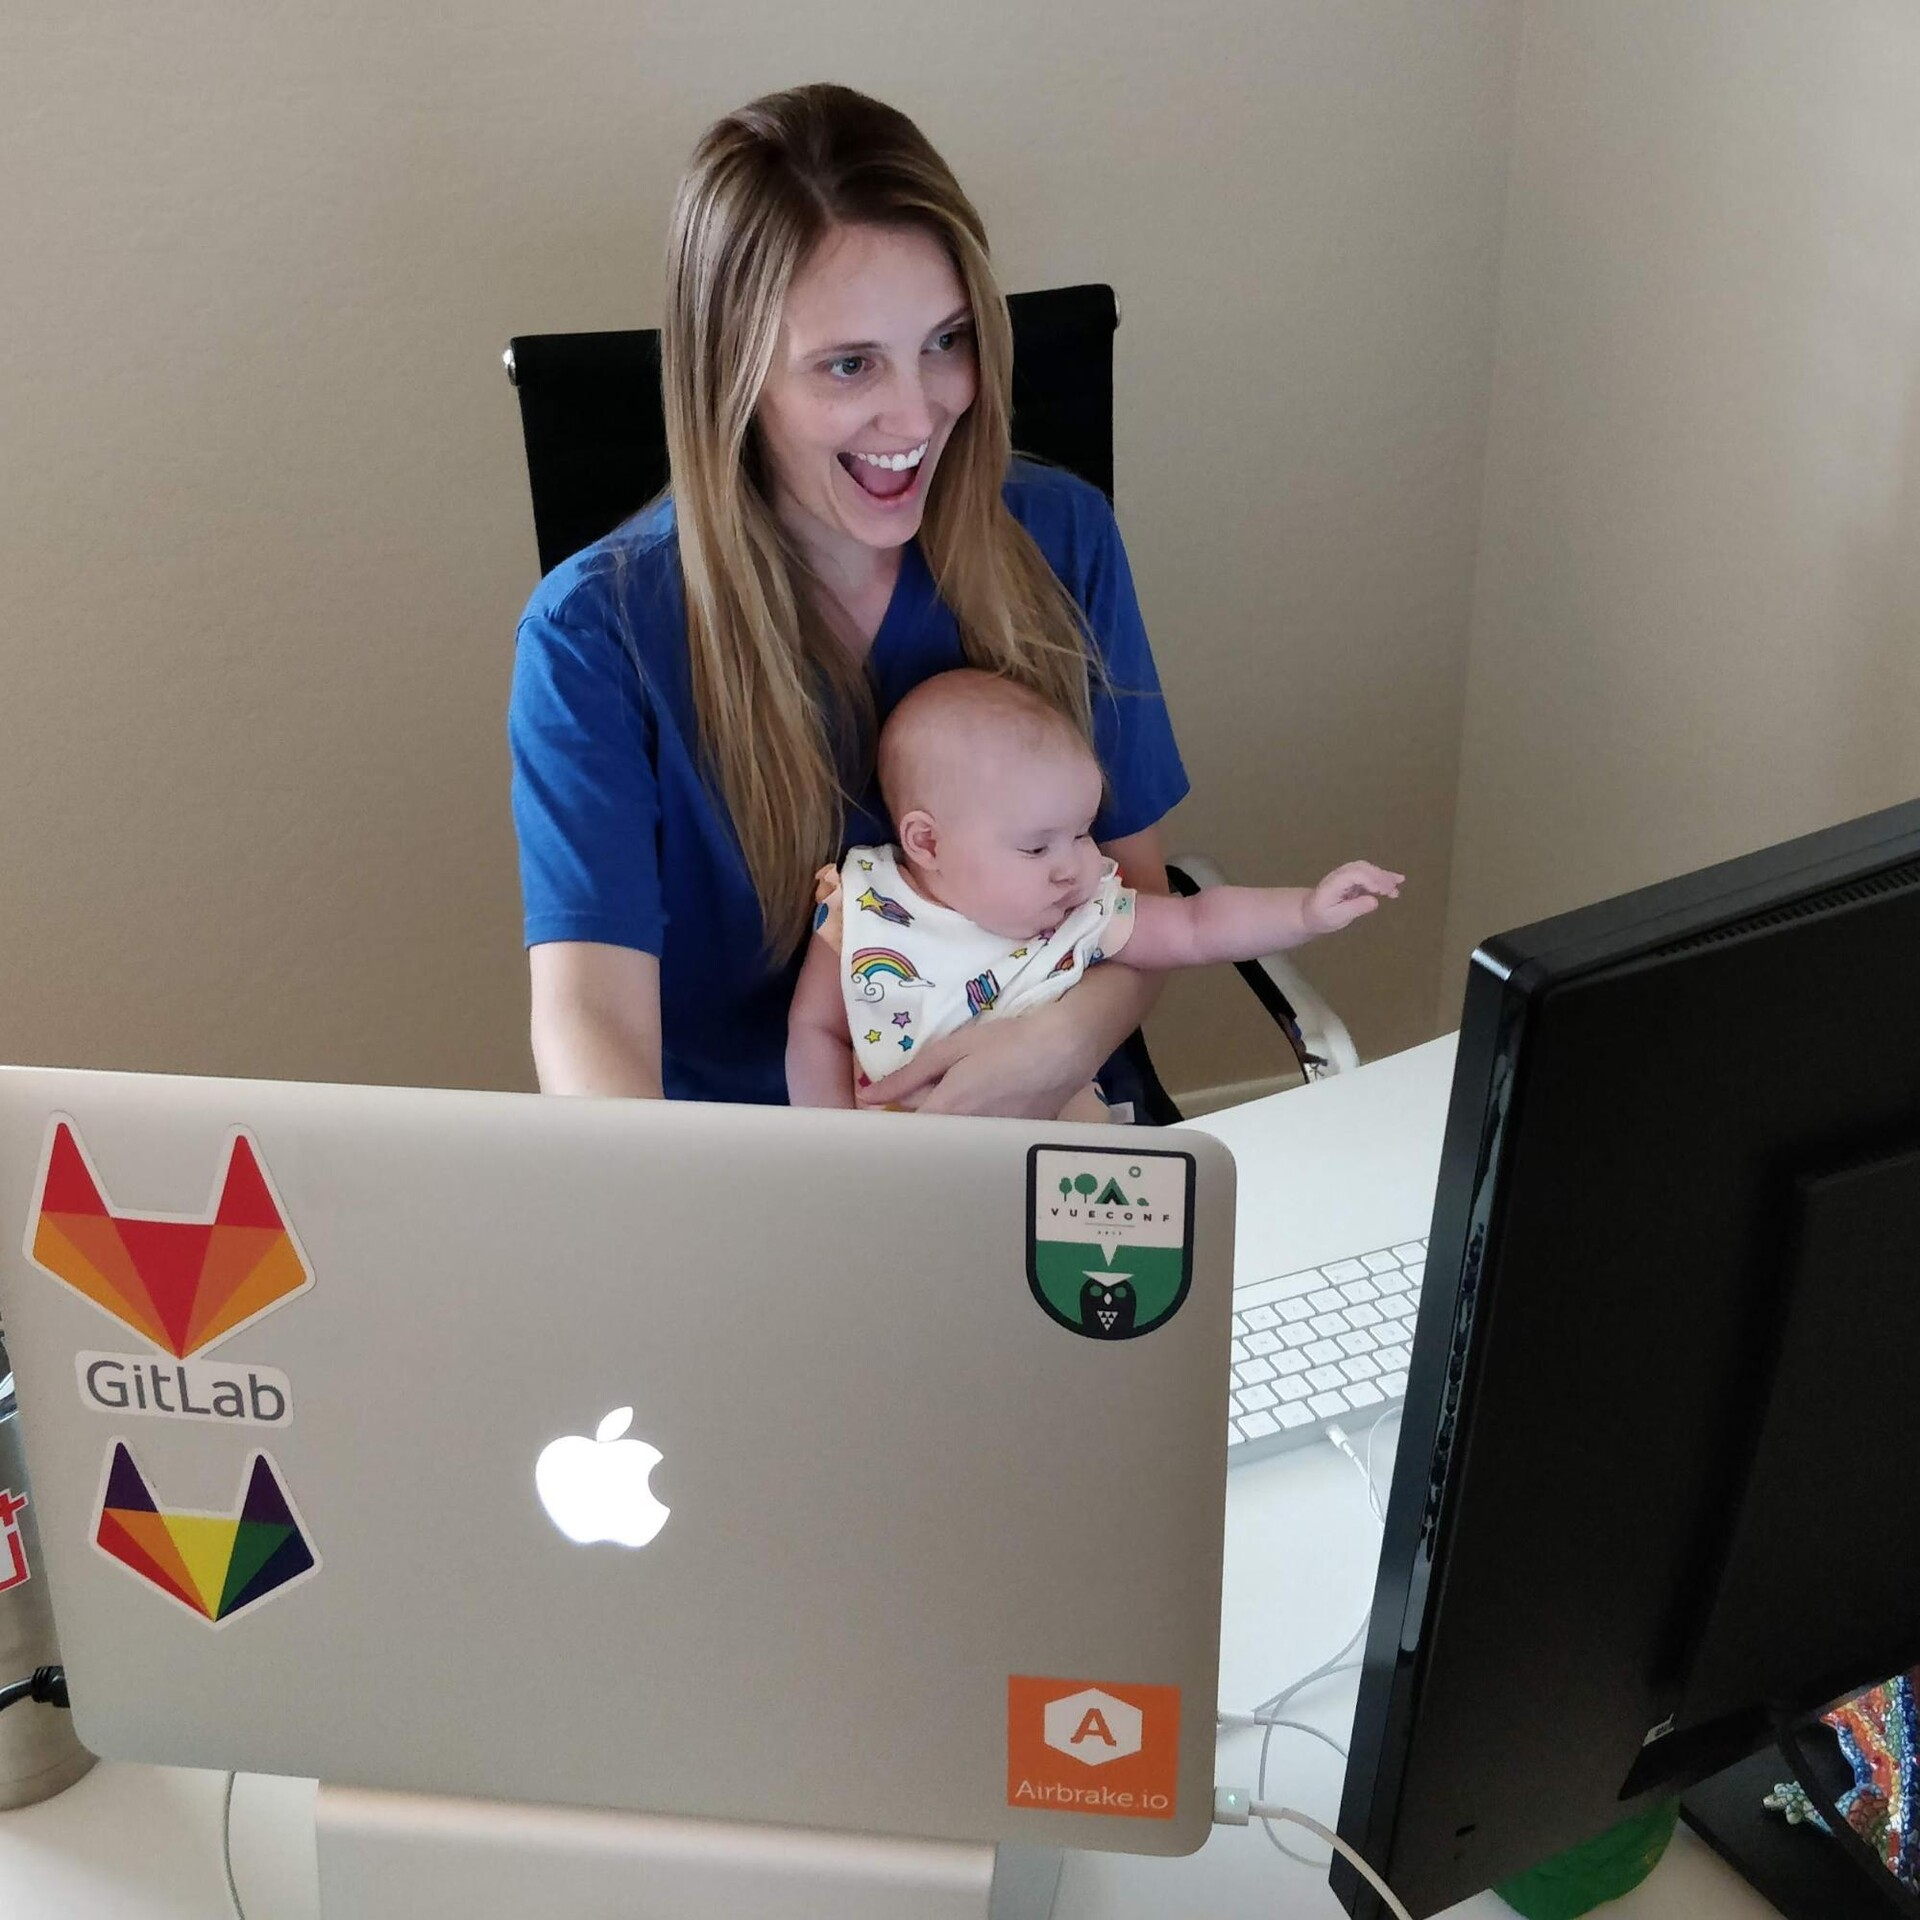 Me and my daughter attending a frontend meeting.